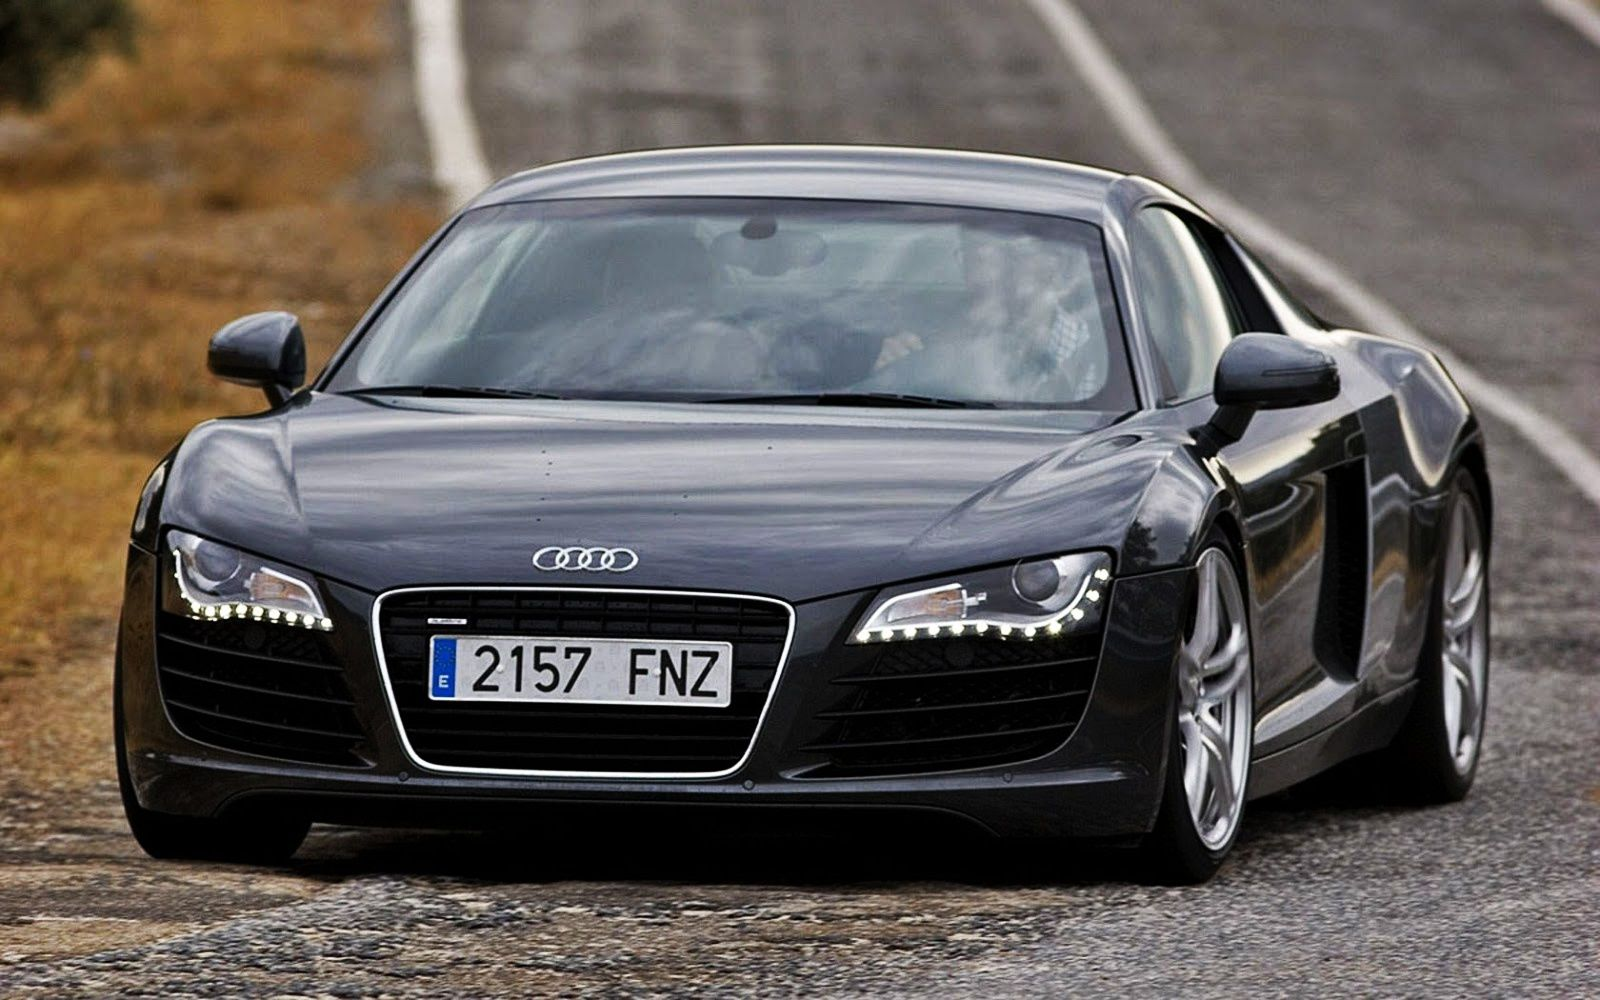 2016 Audi R8 Engine Price And Relase Date | LuxuryCars | Pinterest ...